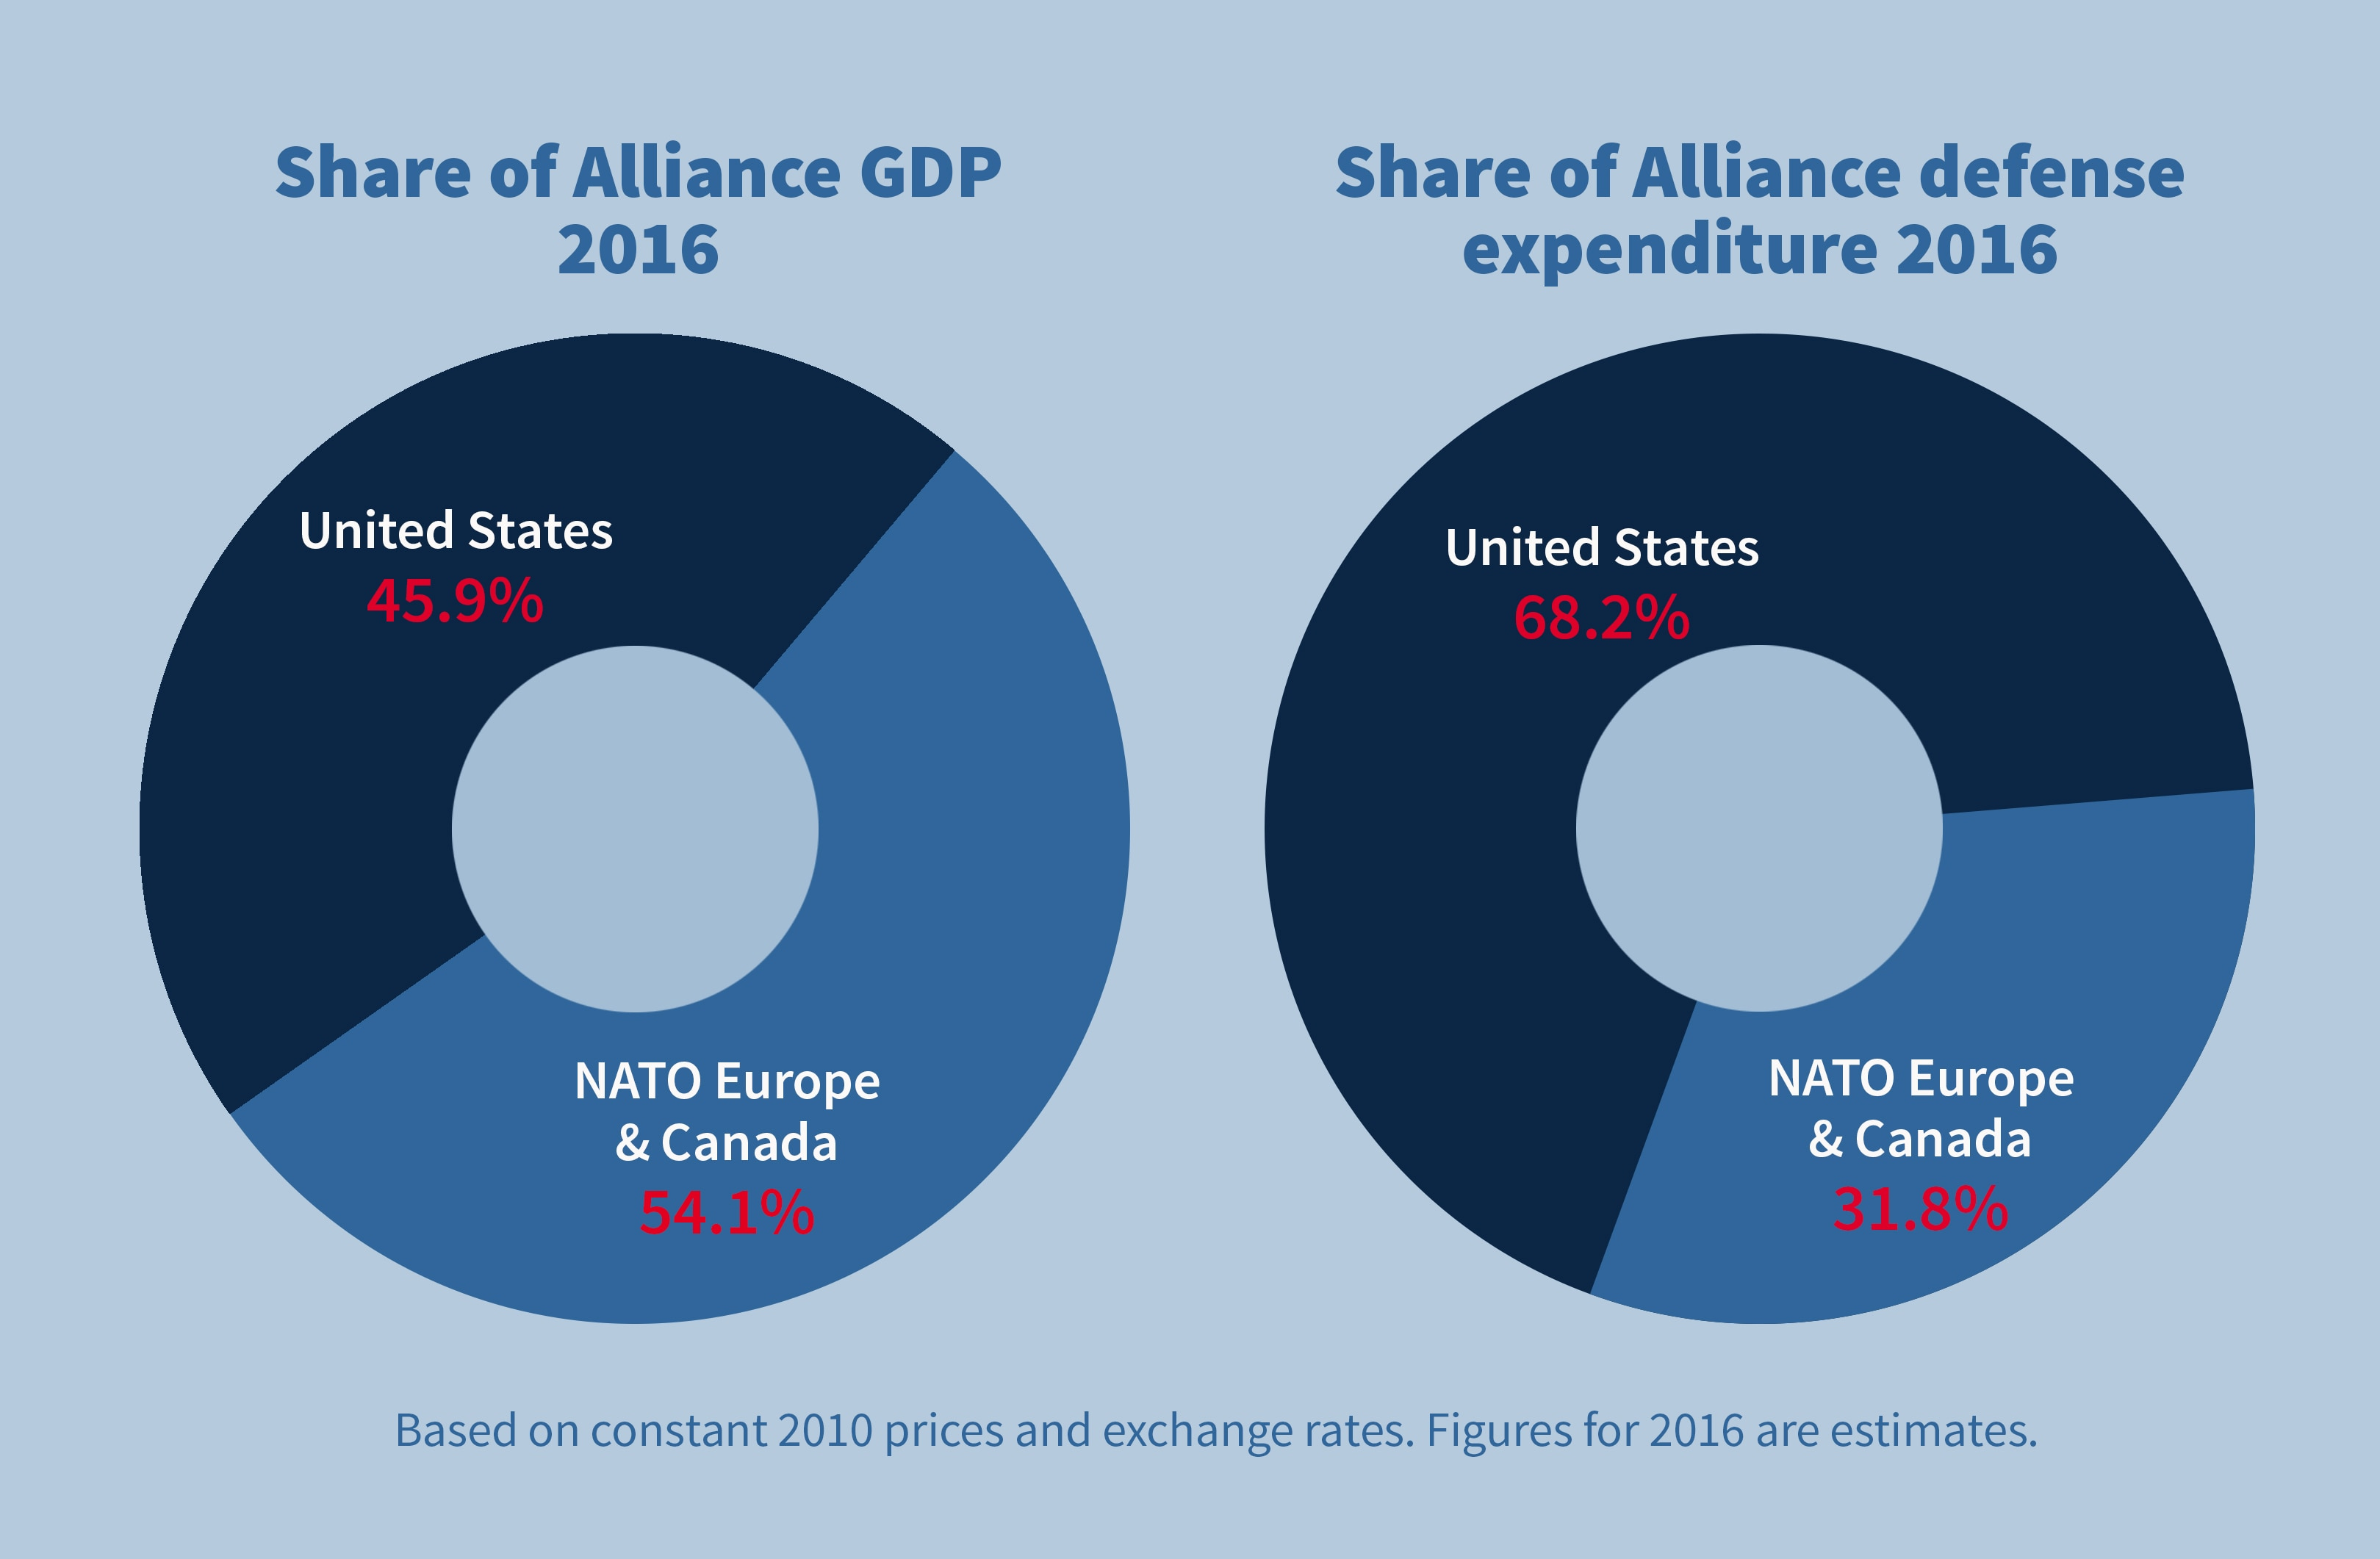 Pie chart showing GDP share of United States and other NATO members, and their Alliance defense expenditures (State Dept./Doug Thompson; source: NATO)